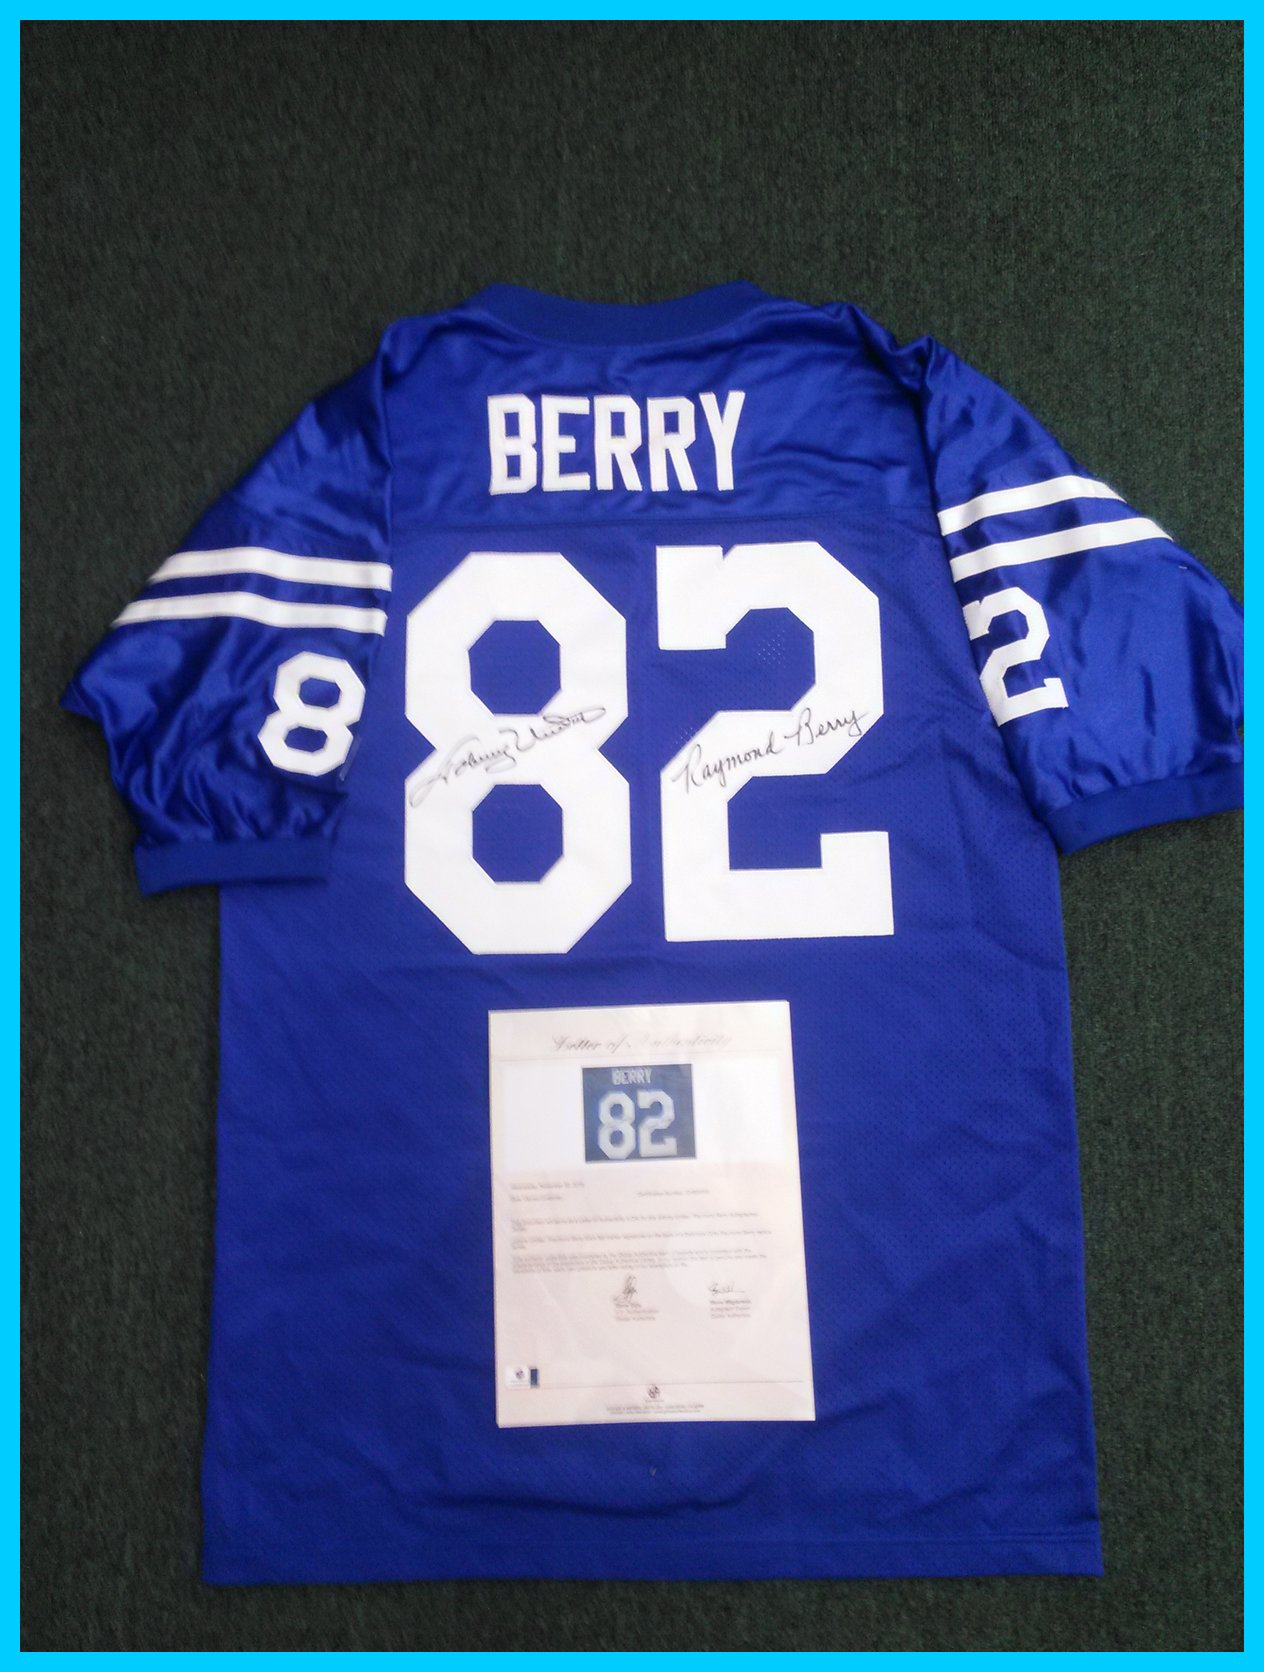 Johnny Unitas and Raymond Berry mutli-signed Raymond Berry jersey (GA)